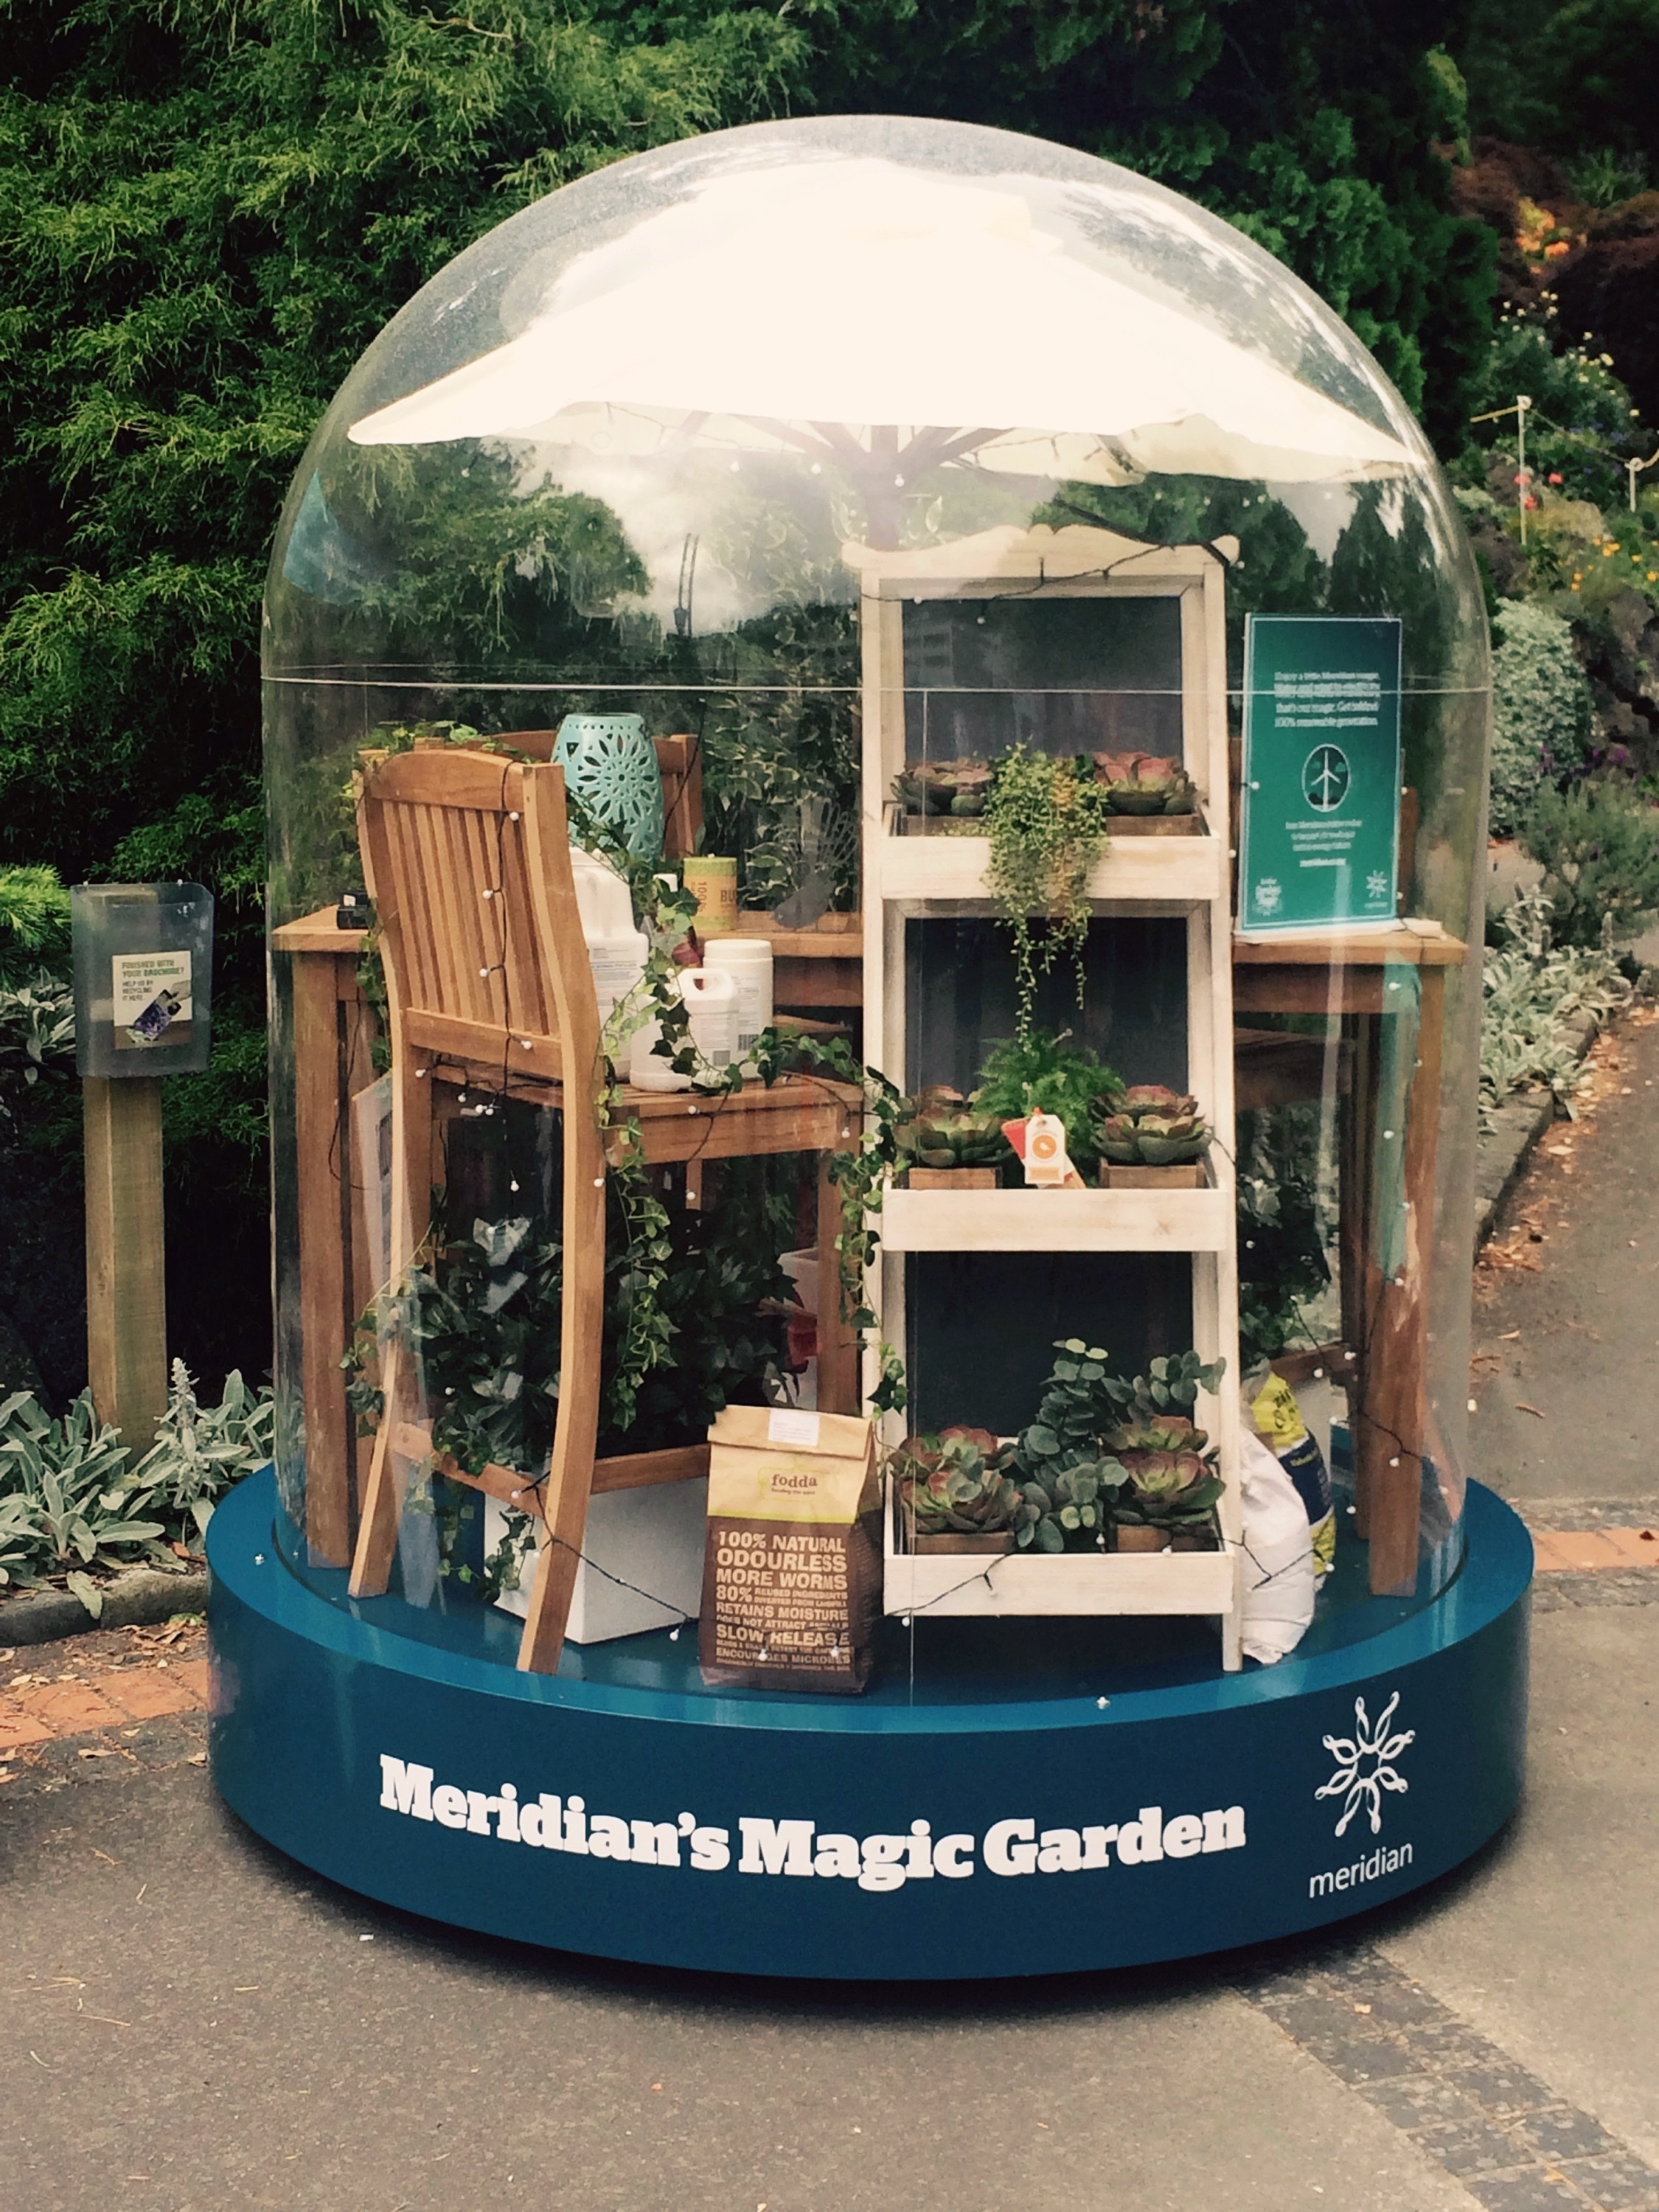 MERIDIAN'S MAGIC GARDEN